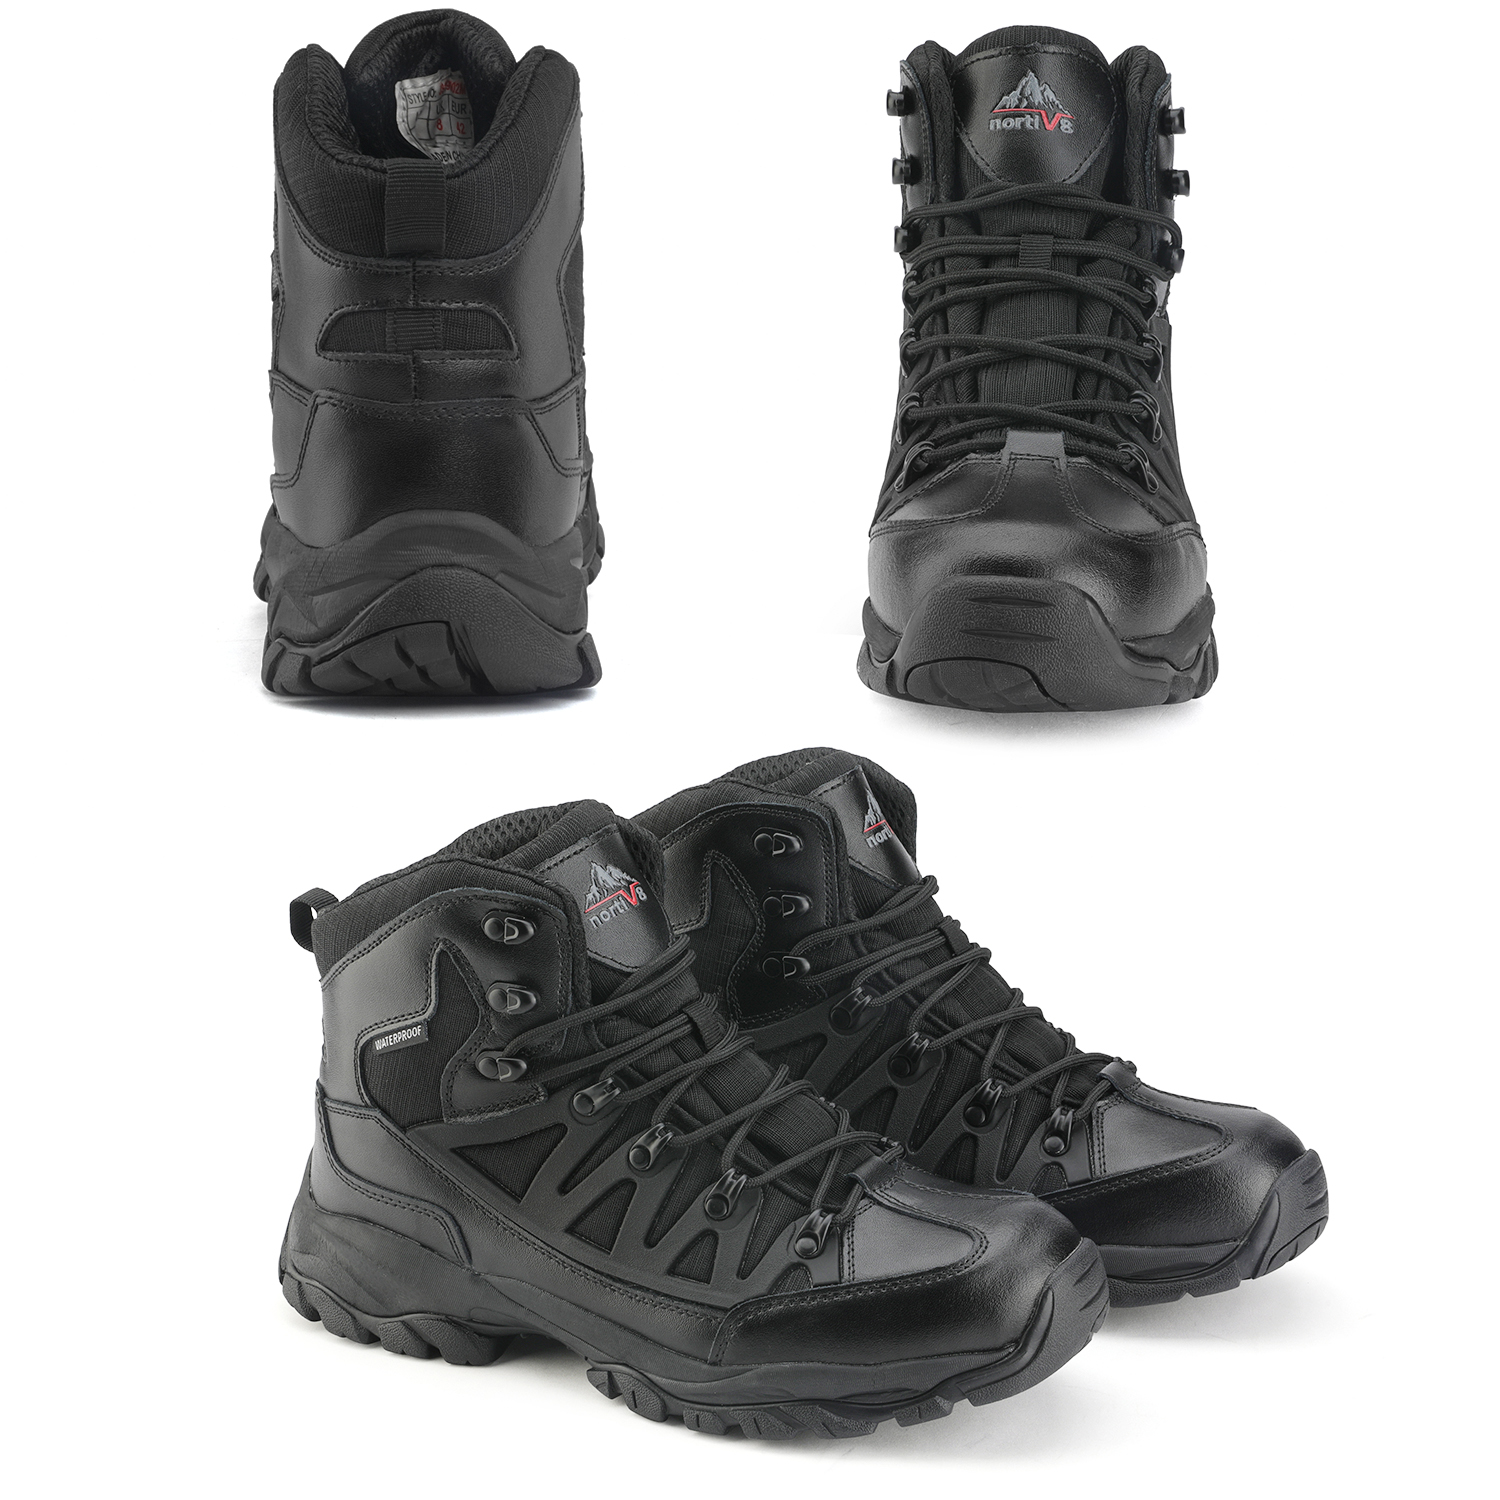 NORTIV-8-Men-039-s-Ankle-Waterproof-Hiking-Boots-Lightweight-Backpacking-Work-Shoes thumbnail 33